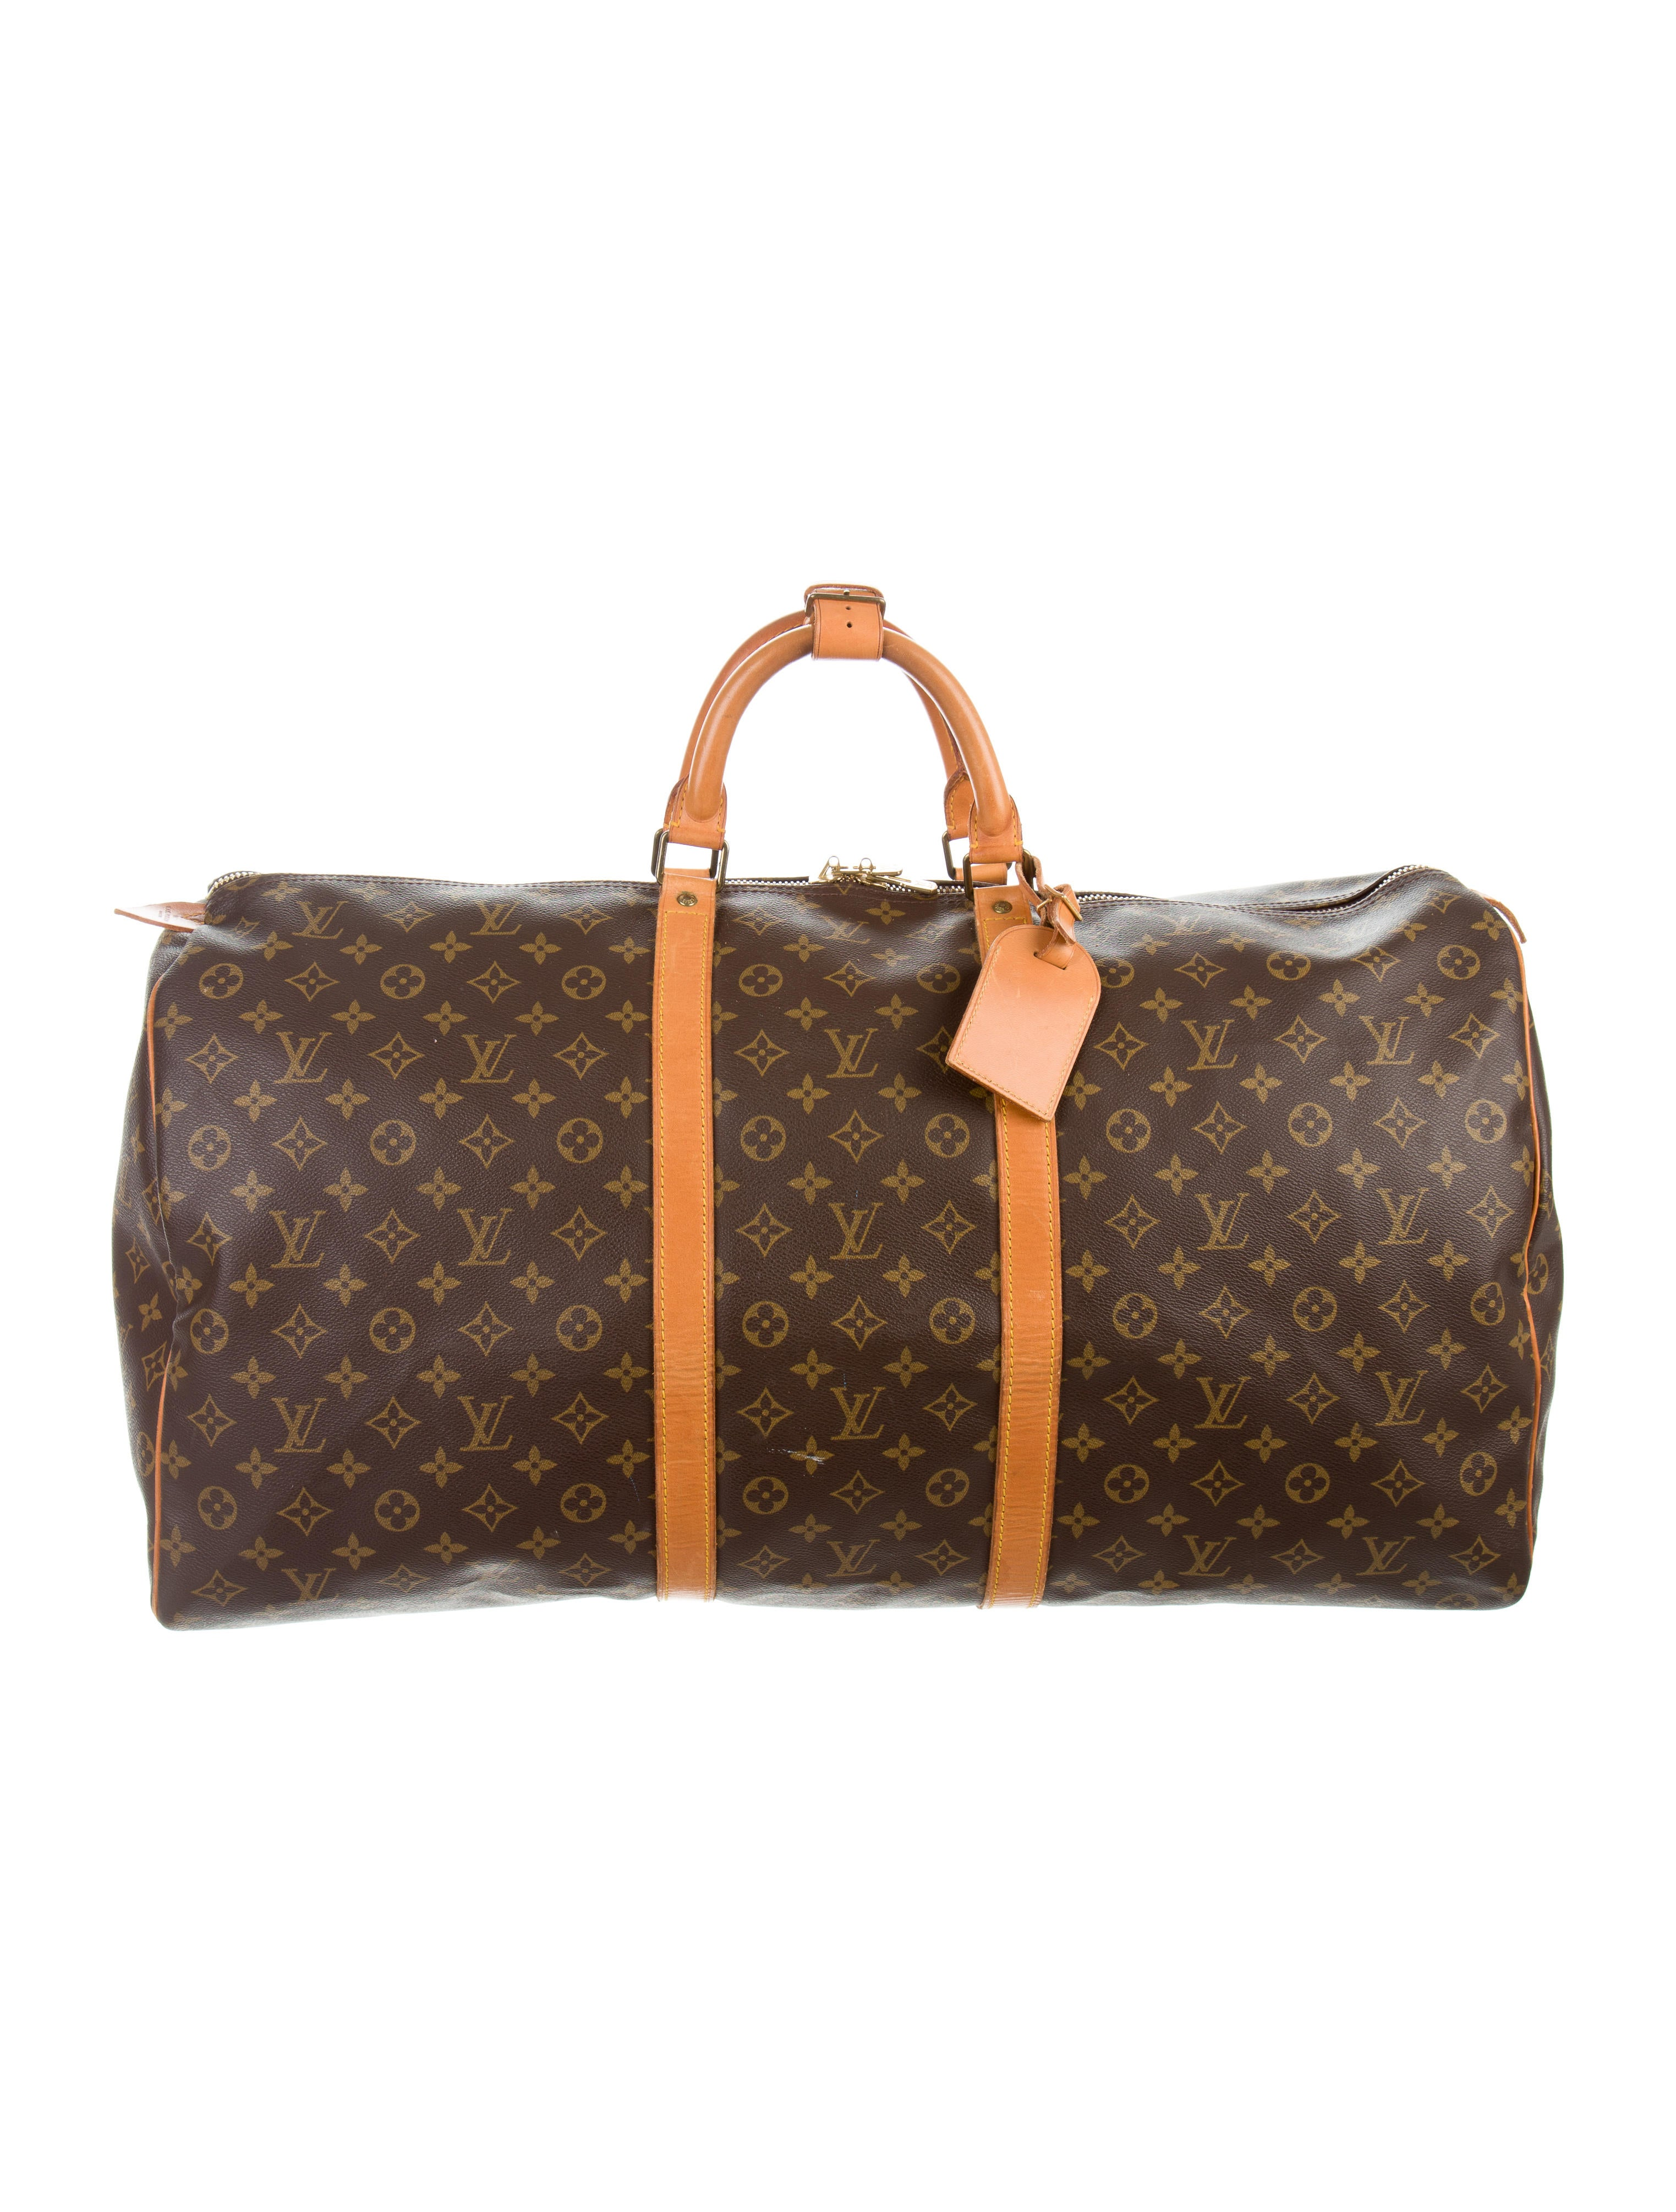 louis vuitton monogram keepall 60 bags lou119281 the realreal. Black Bedroom Furniture Sets. Home Design Ideas